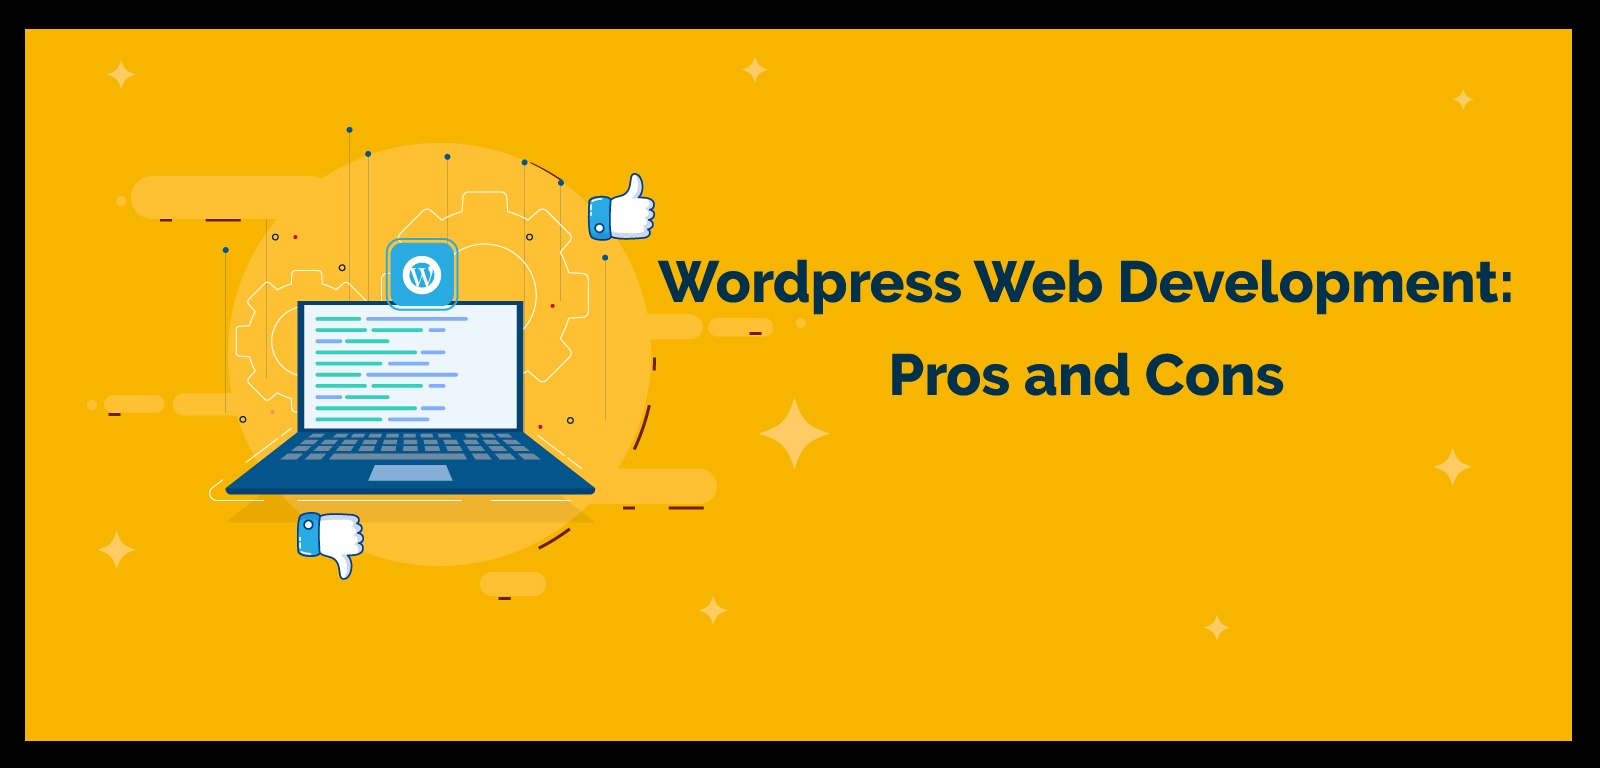 Wordpress Web Development: Pros and Cons